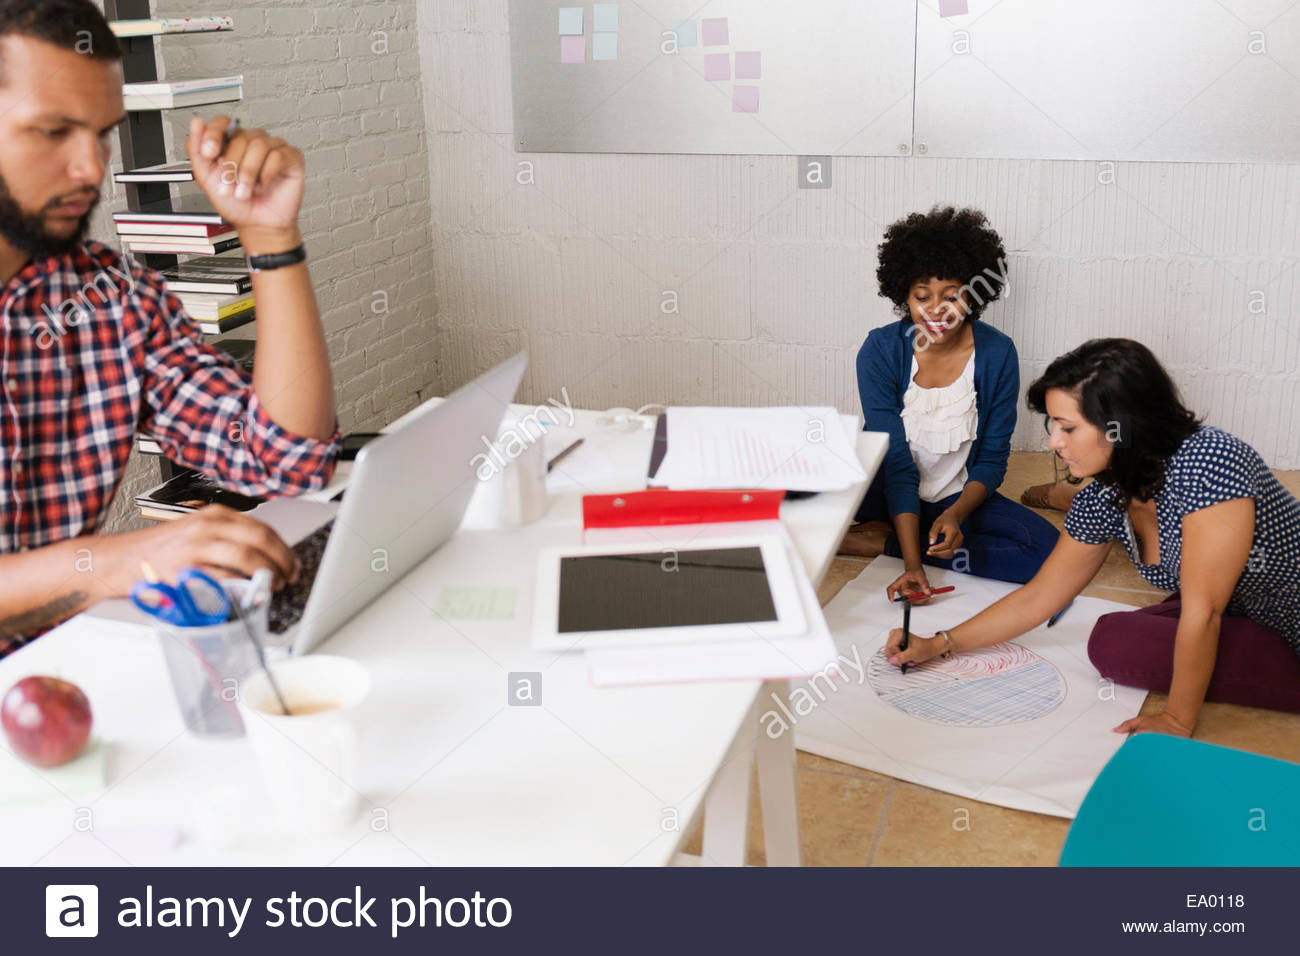 People working in Small Business, Start-up - Stock Image